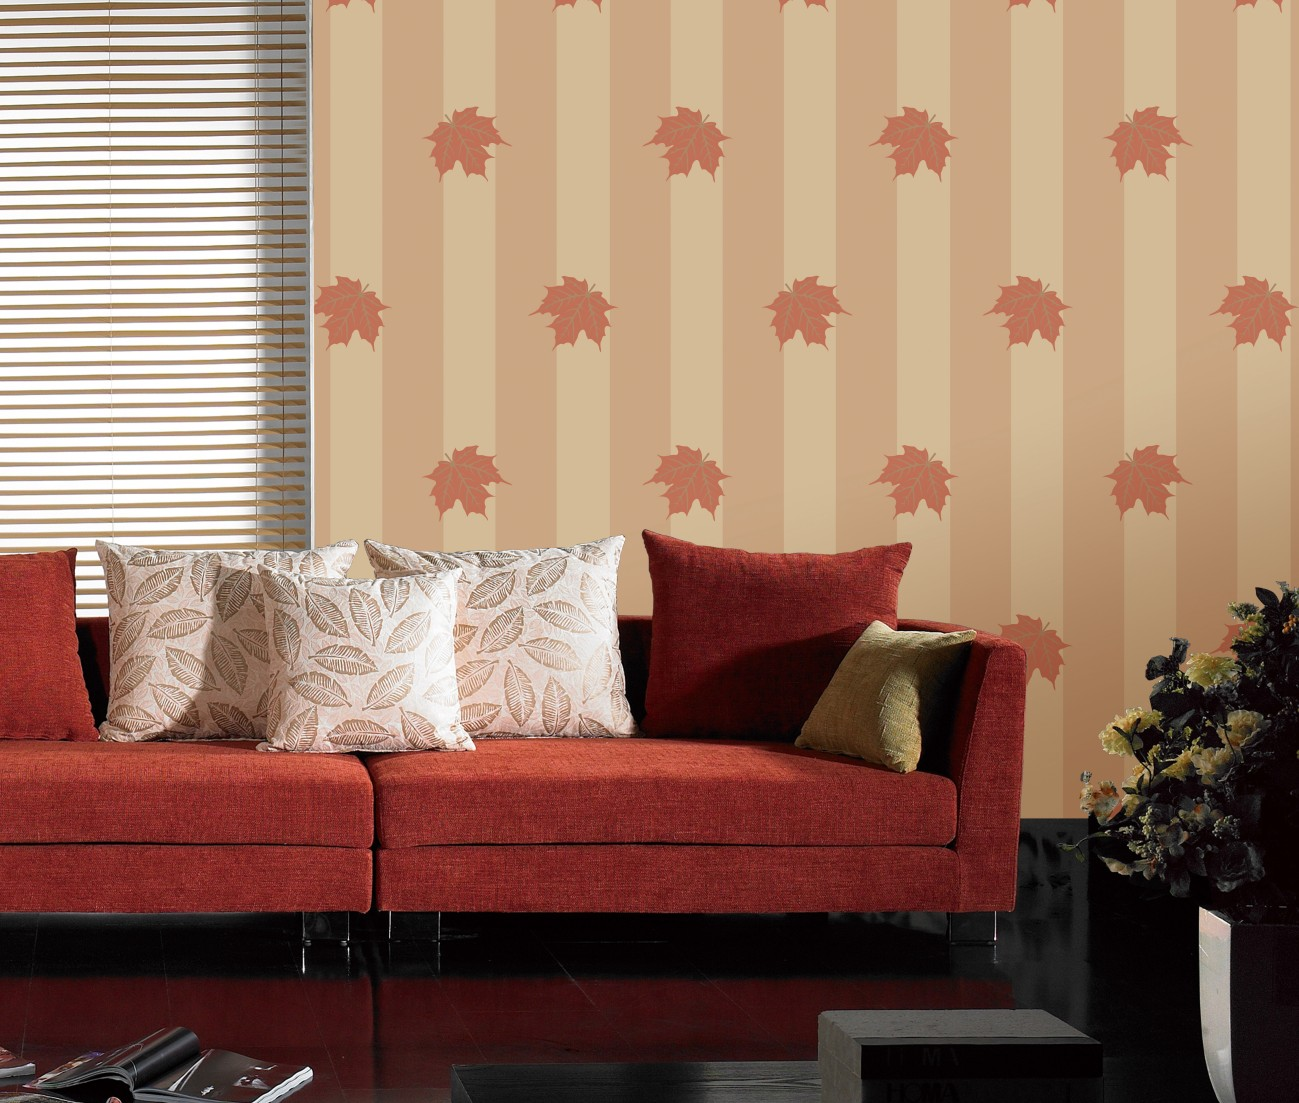 Plank-non-woven foaming sprinkled gold wallpaper